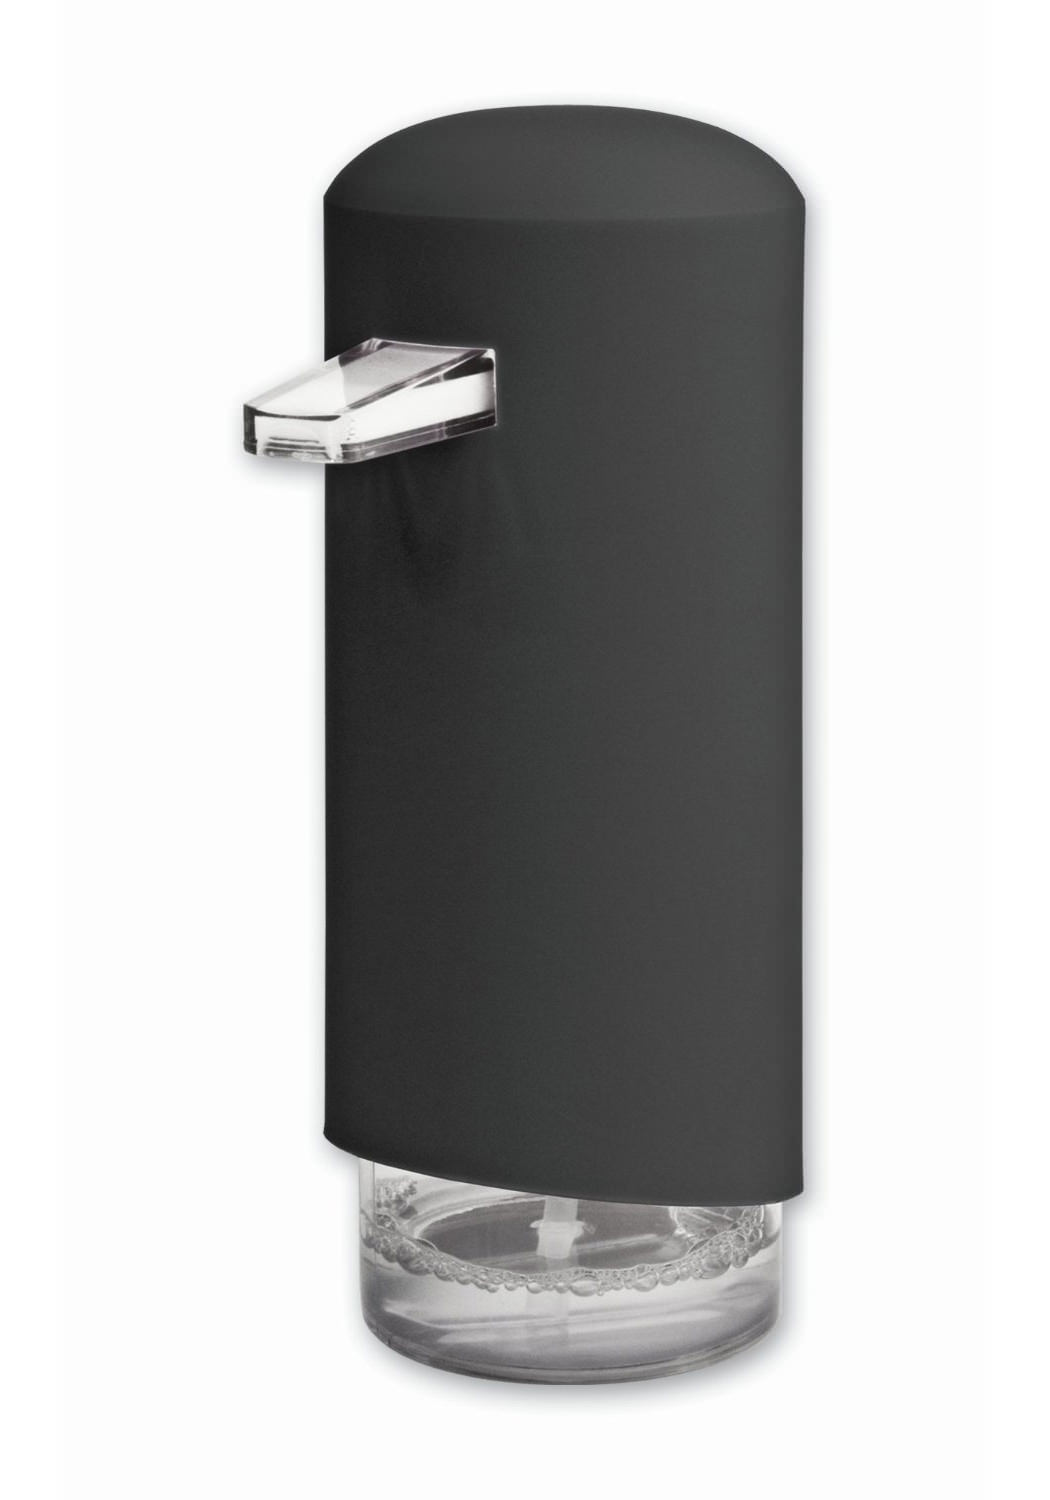 Black Automatic Soap Dispenser Croydex Black Foam Soap Dispenser Pa661221